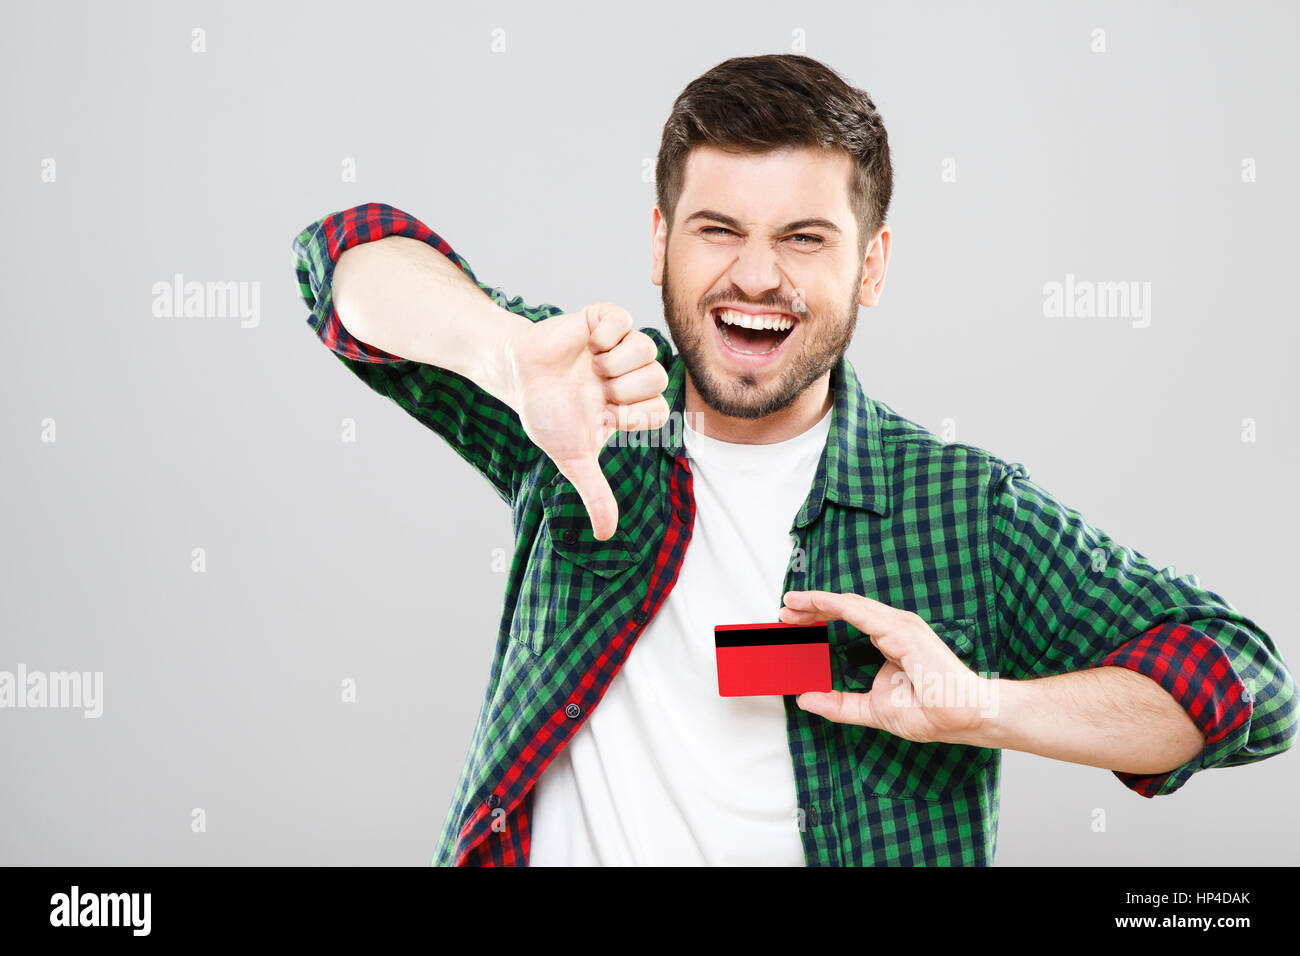 Man showing thumbs down - Stock Image